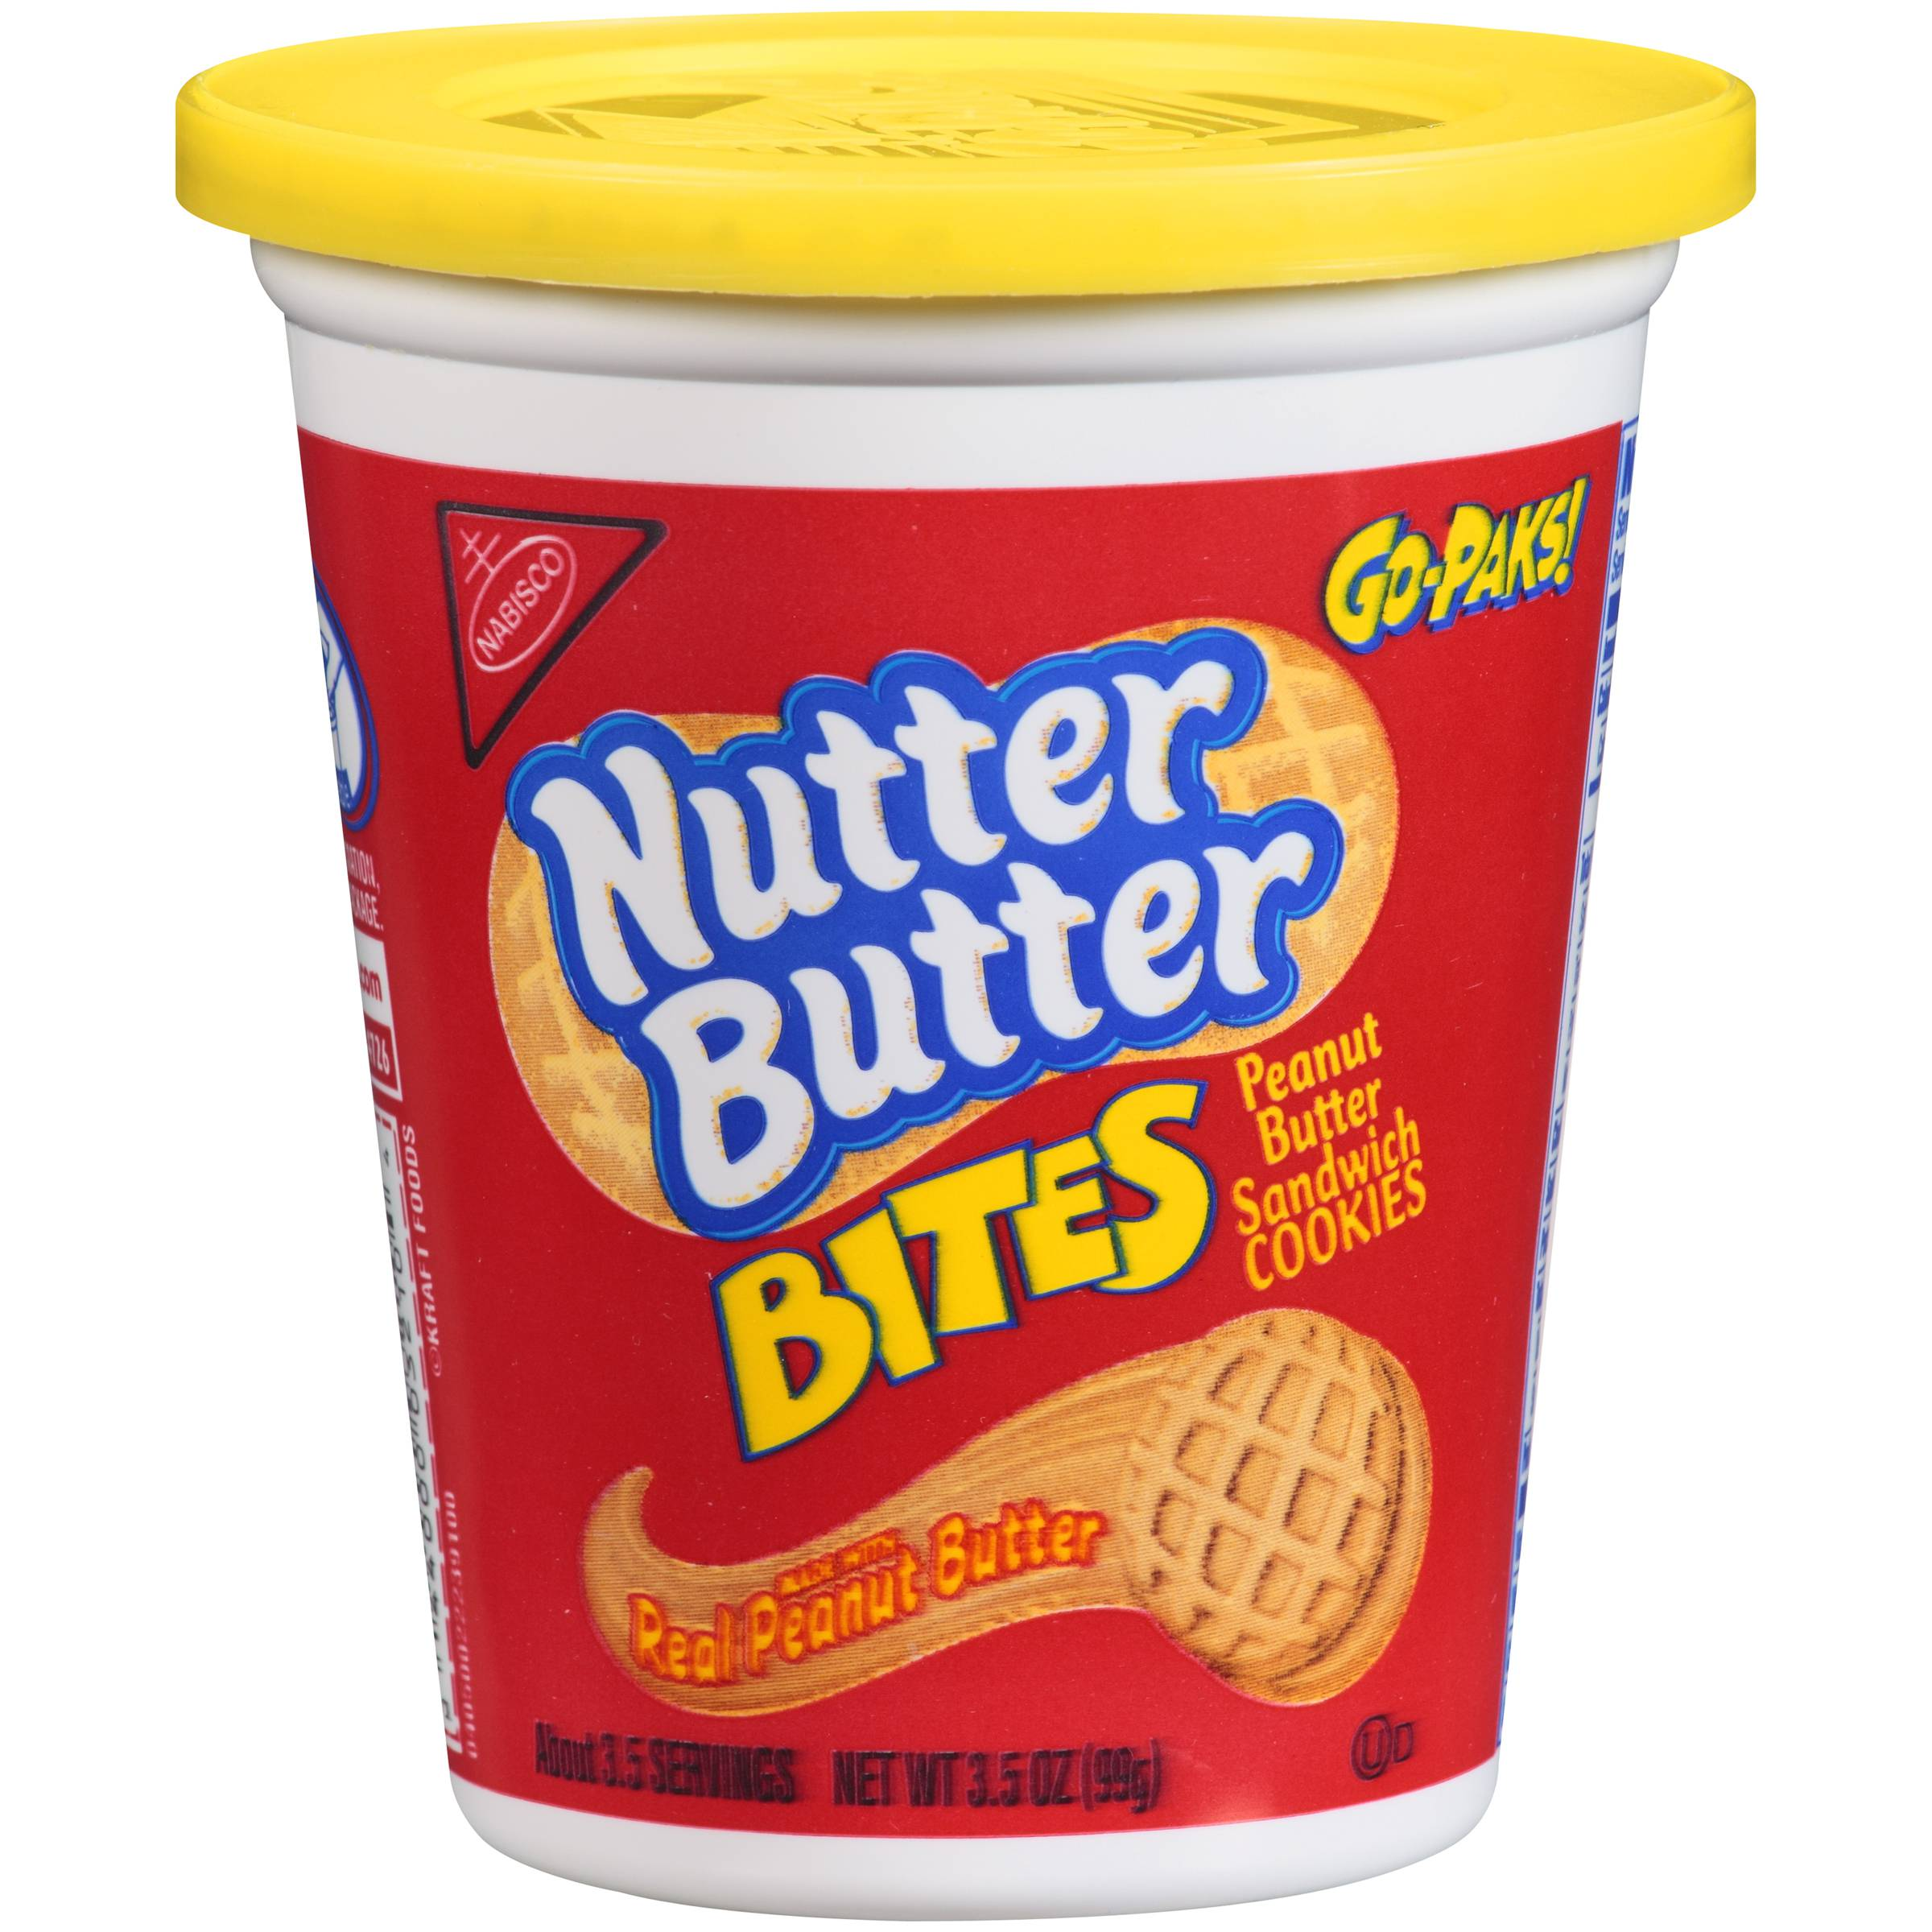 Nabisco Nutter Butter Cookies Go Pak Bites, 3.5 Ounce (12 Pack)